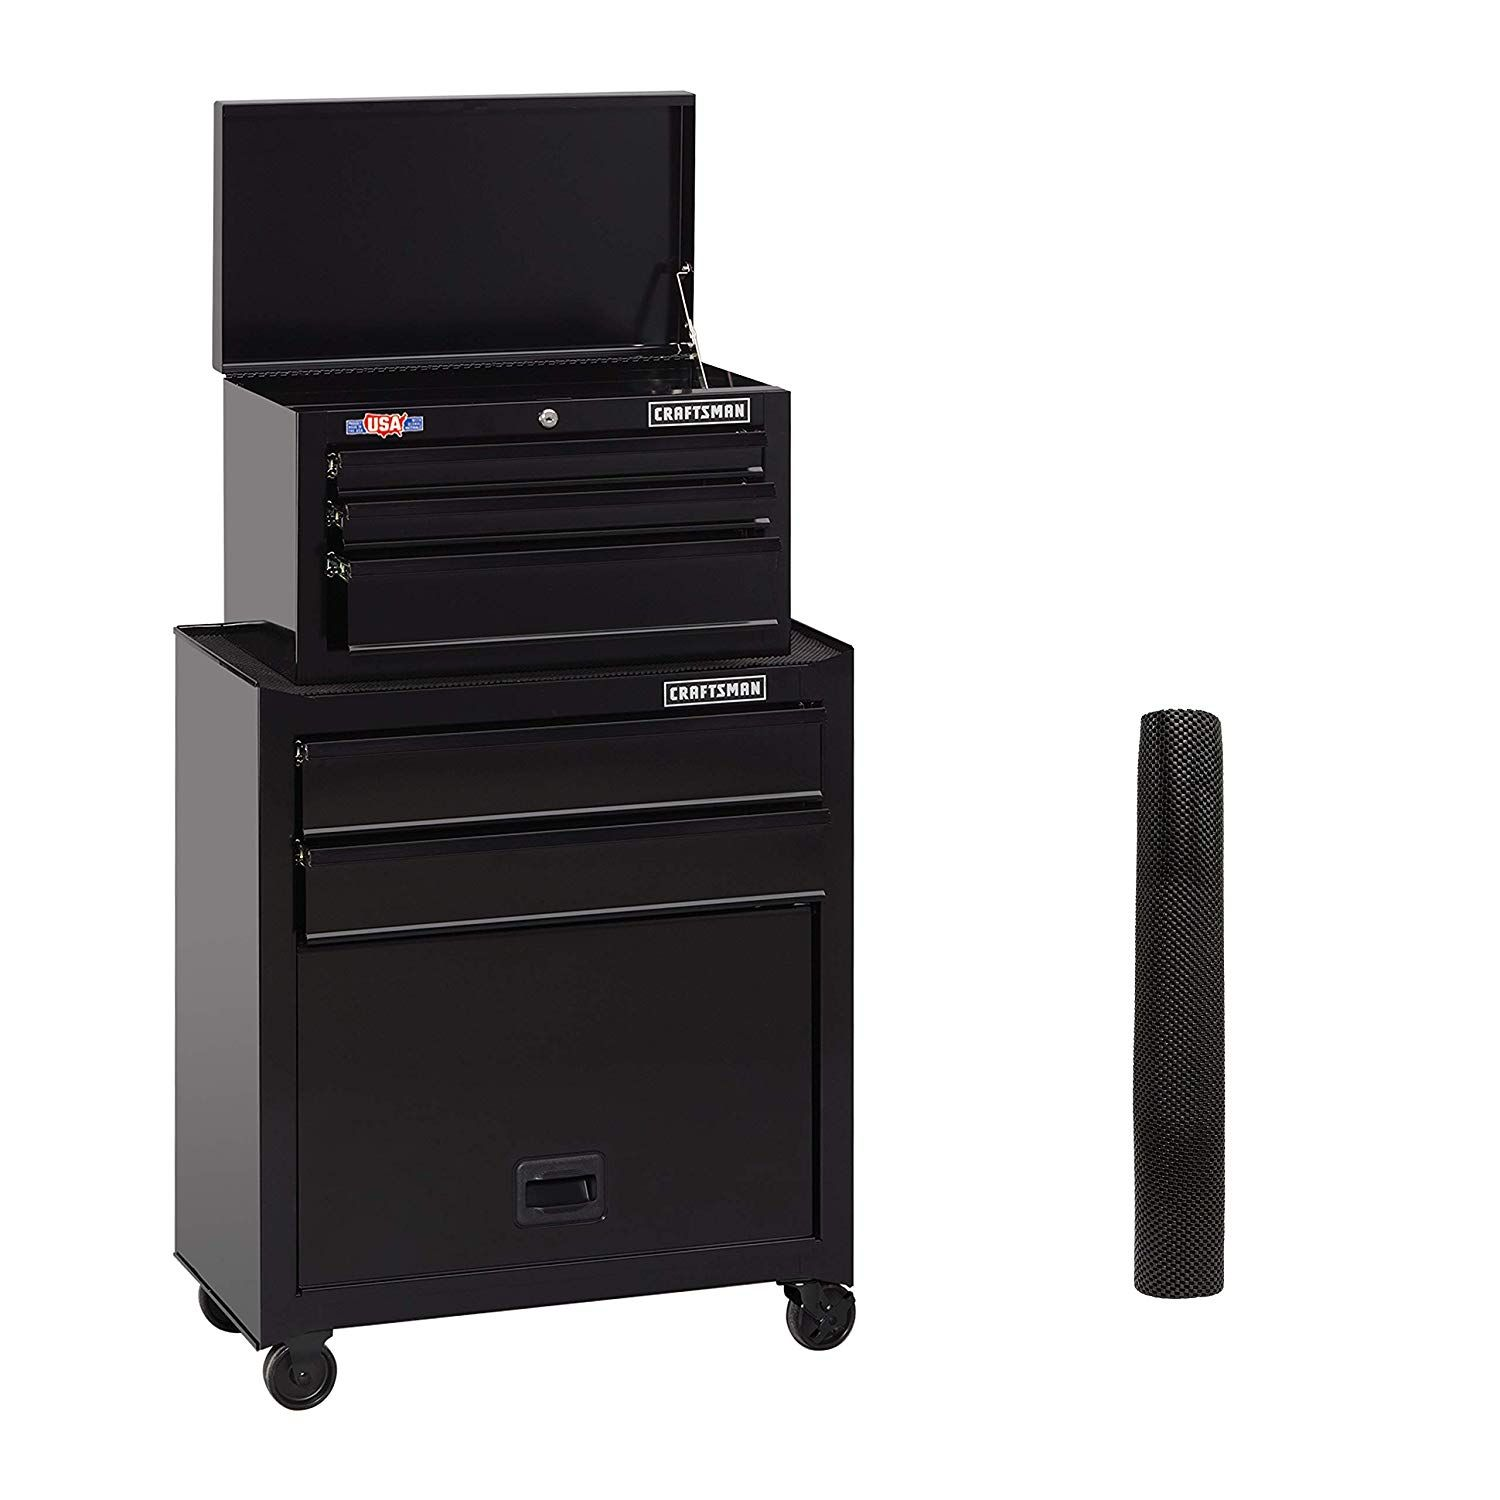 Craftsman Tool Chest Combo 26 Inch 5 Drawer Black Cmst82763bk Click Image To Review More Details Craftsman Tools Chest Craftsman Tools Locker Storage